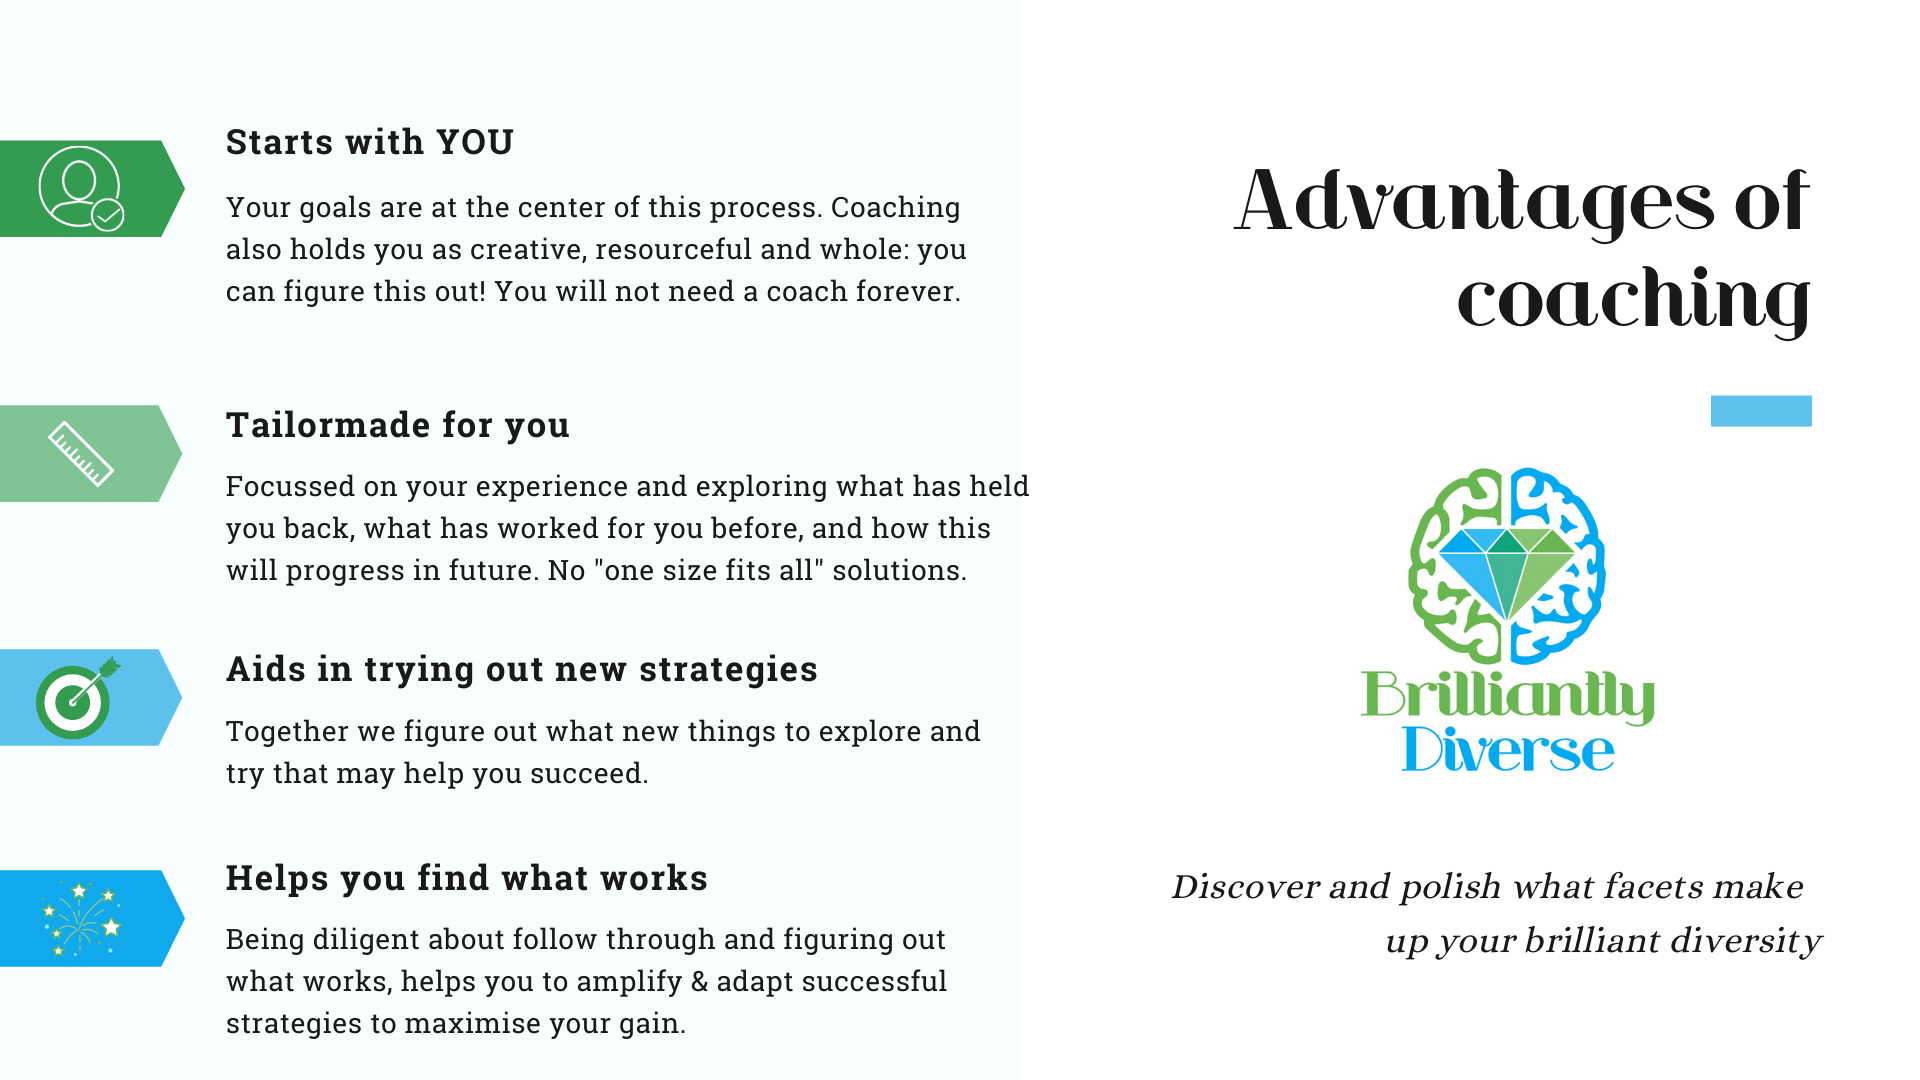 Advantages of coaching  *Starts with you  *Tailormade to suit you  *Aids in trying out new strategies  *Helps you find what works